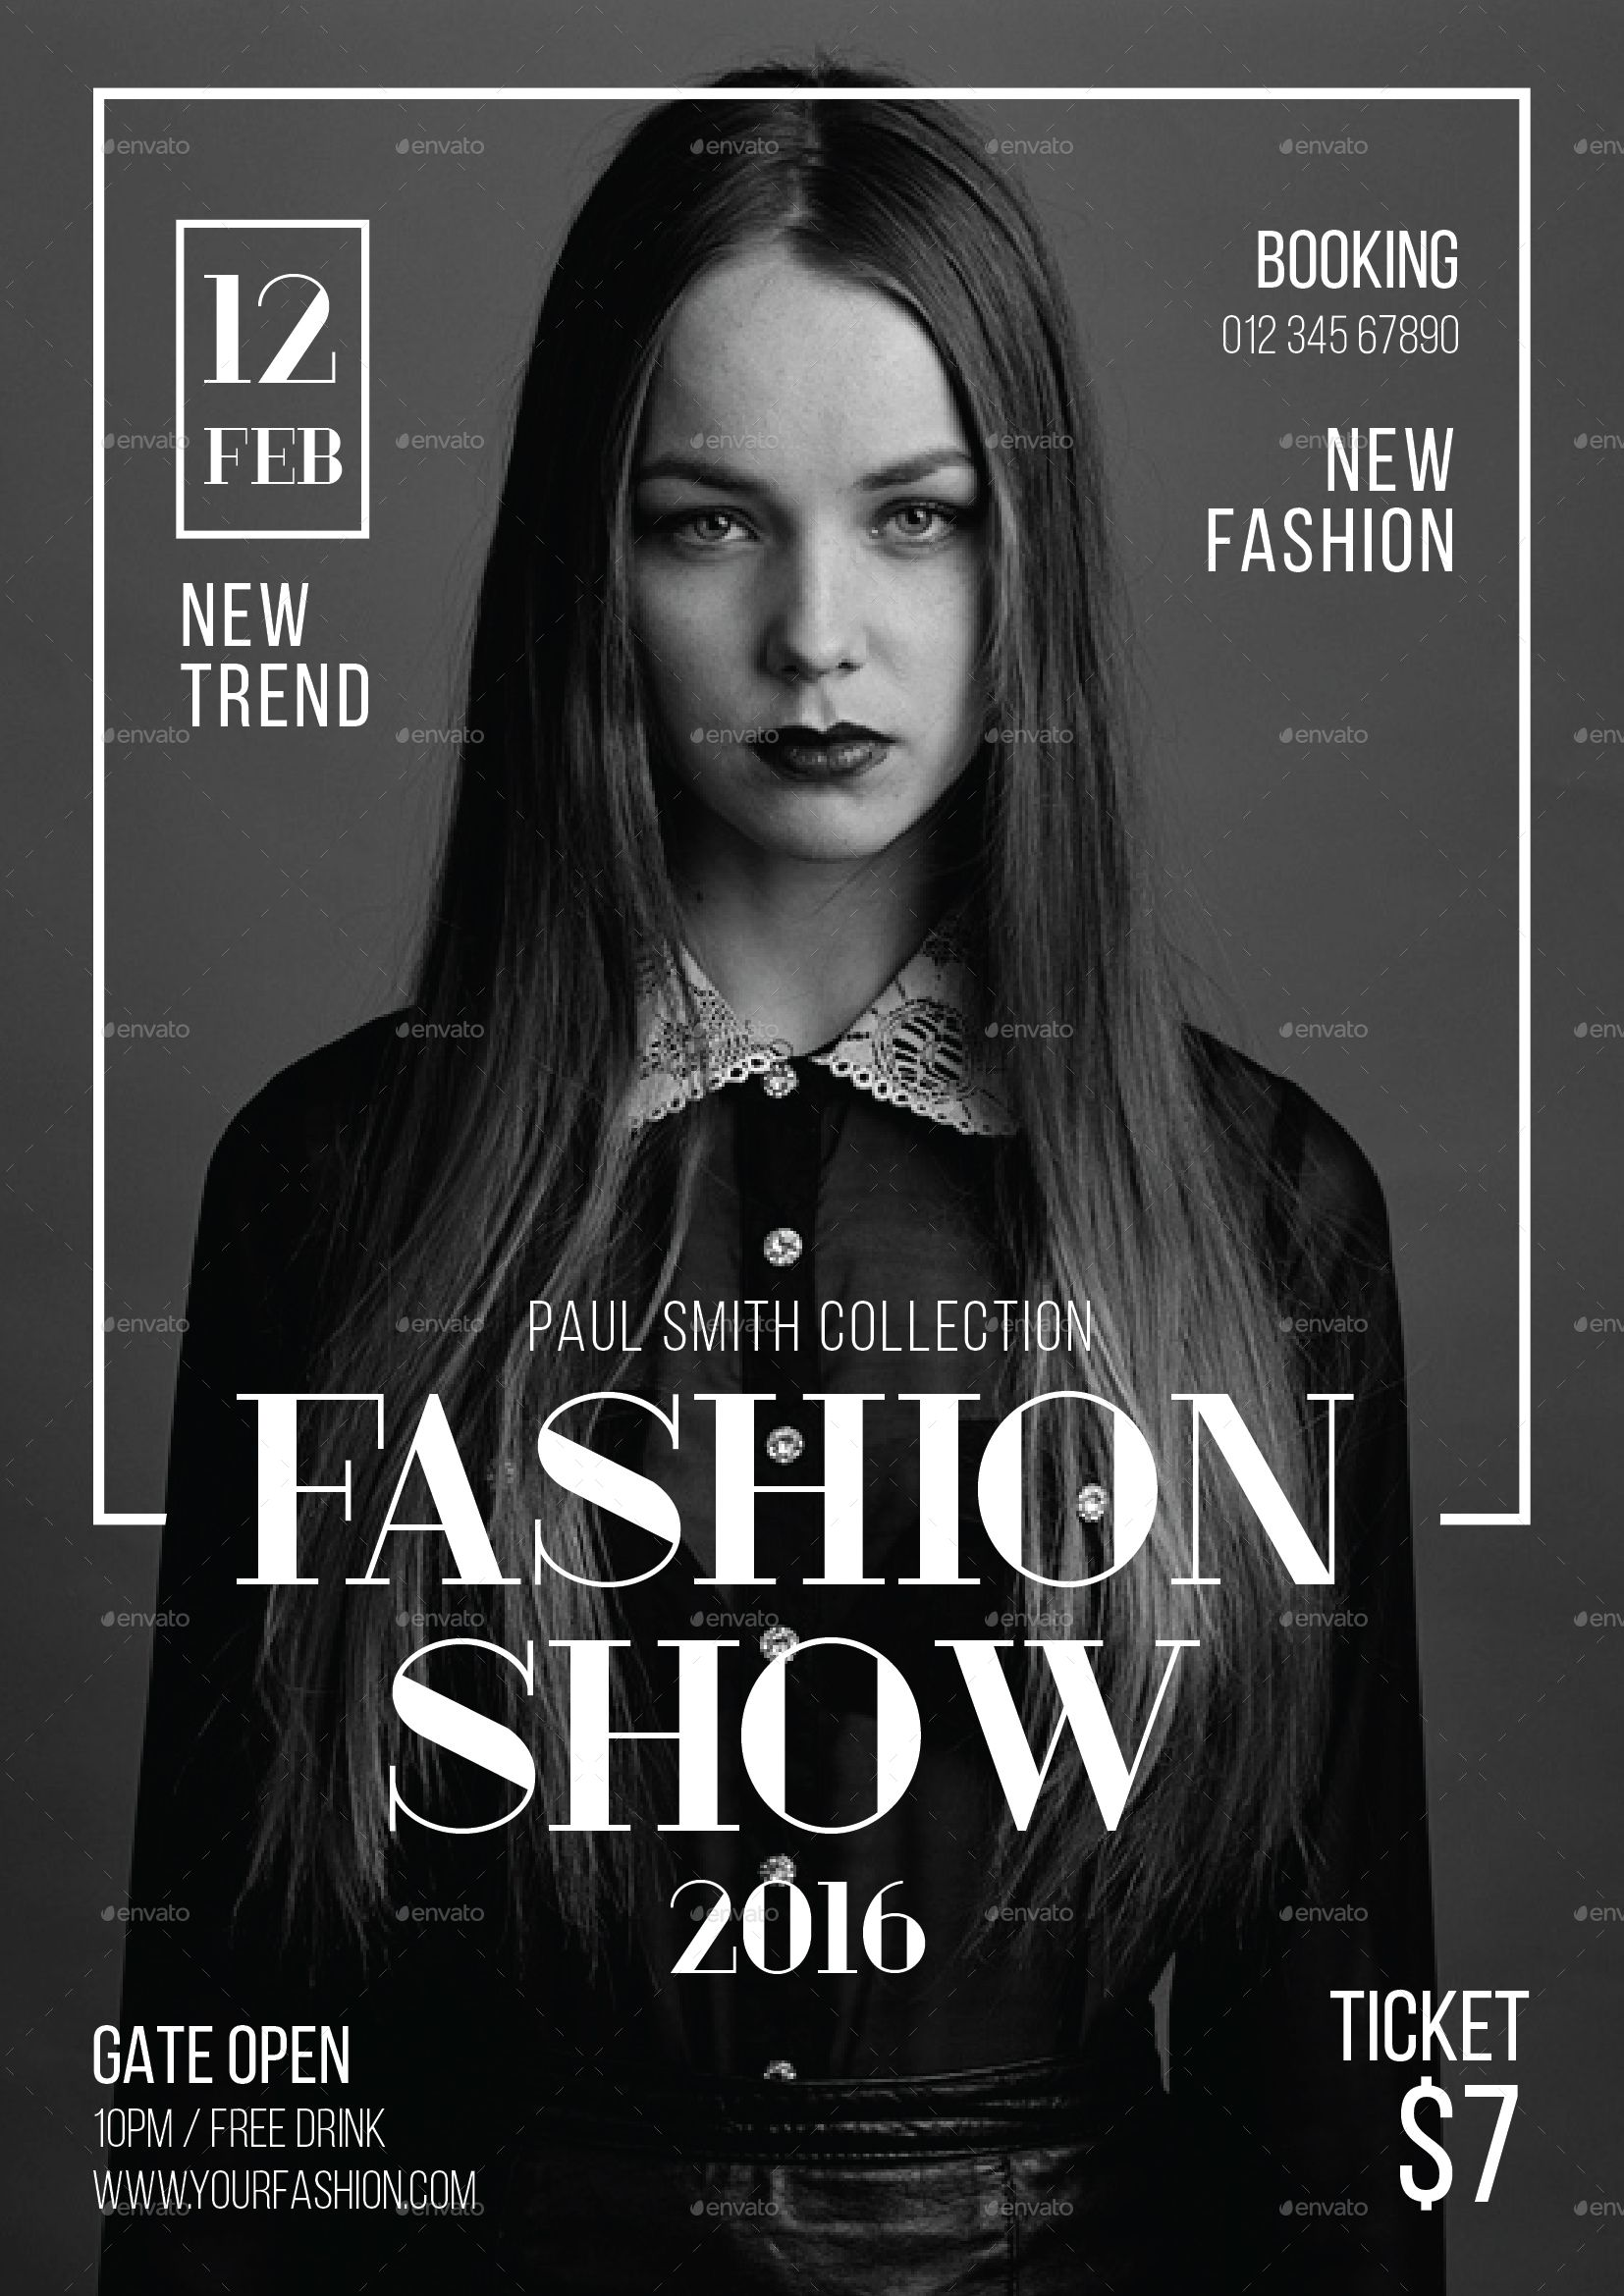 Fashion Show Flyer | Graphics, Graphic posters and Poster